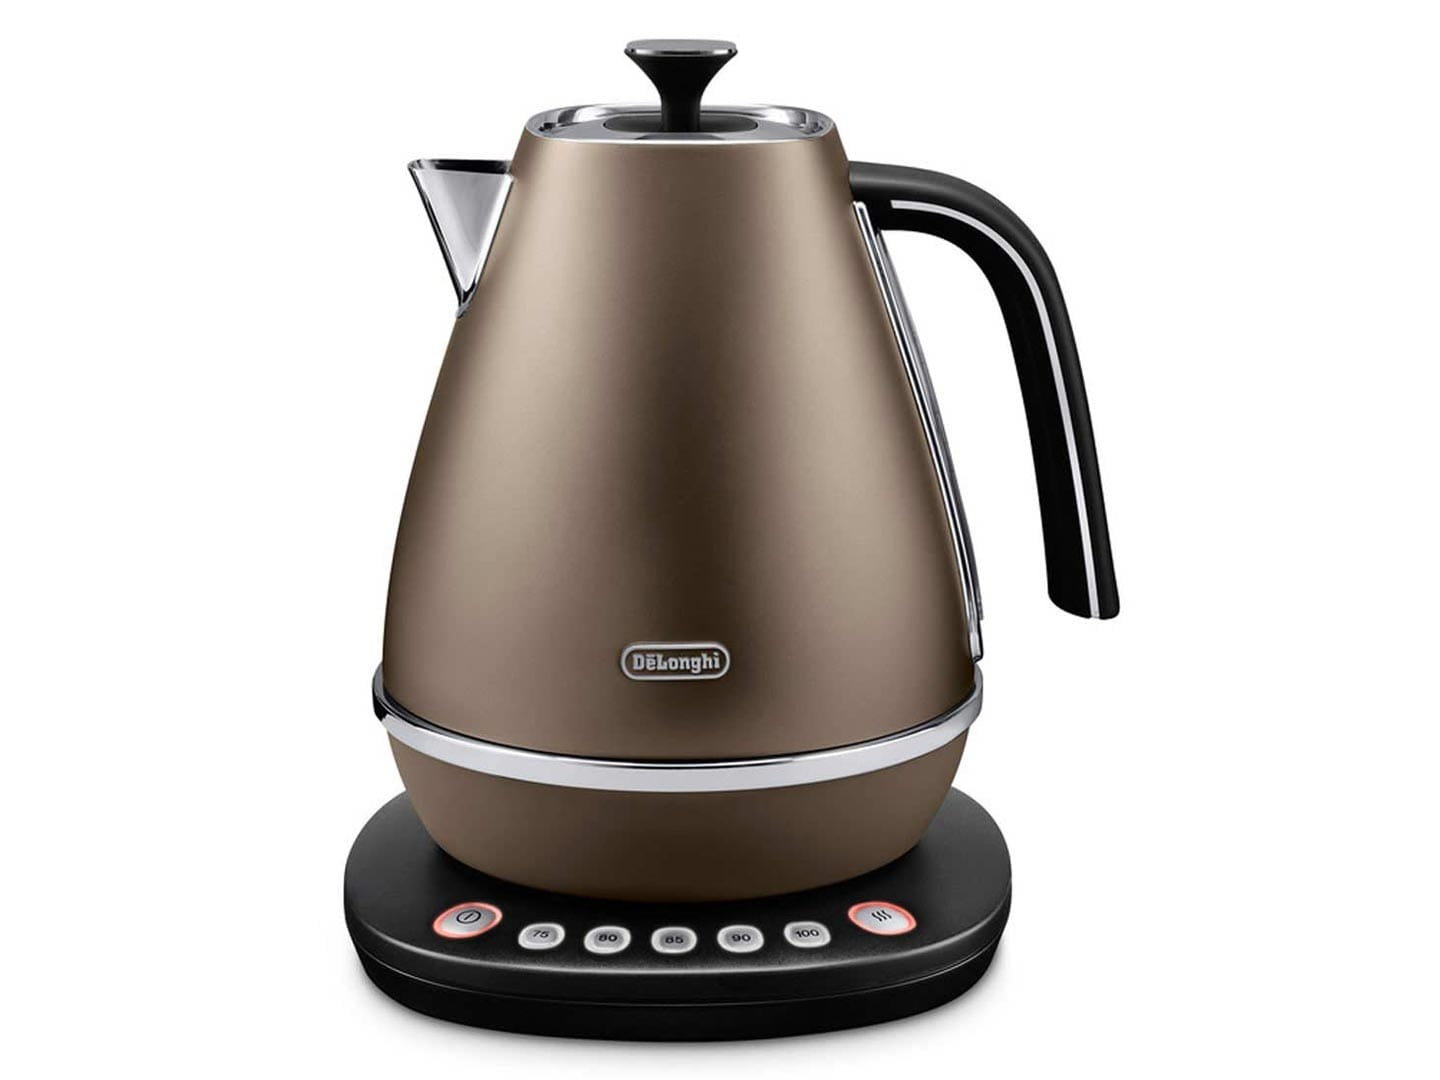 delonghi distinta wasserkocher